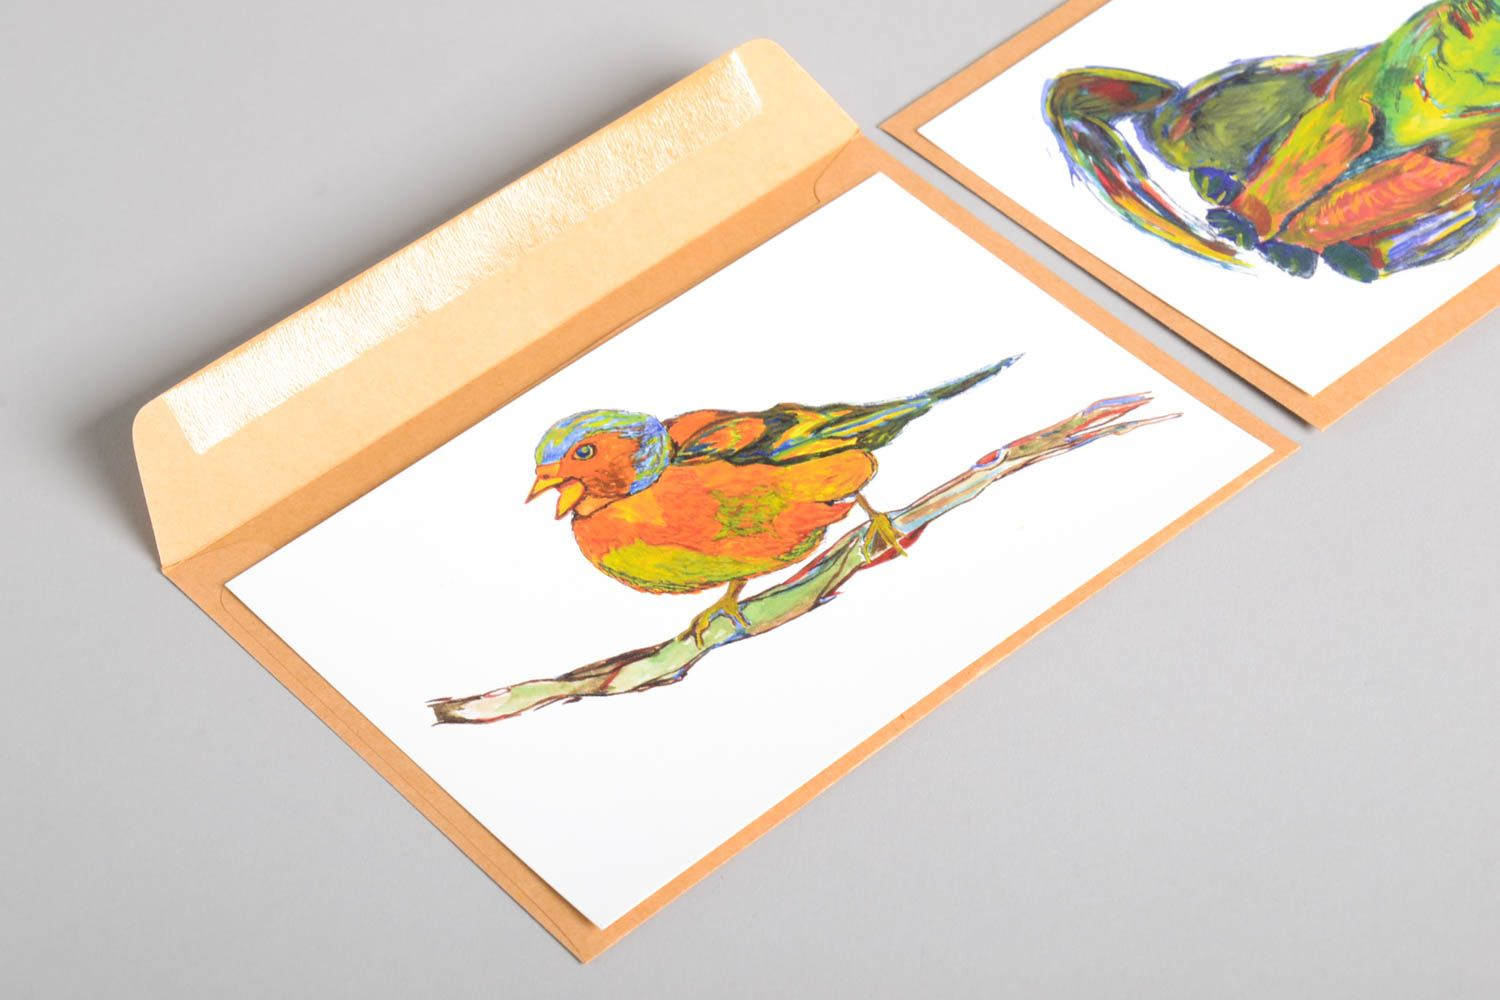 Exclusive greeting card for handmade gift ideas designer cards for signature photo 5